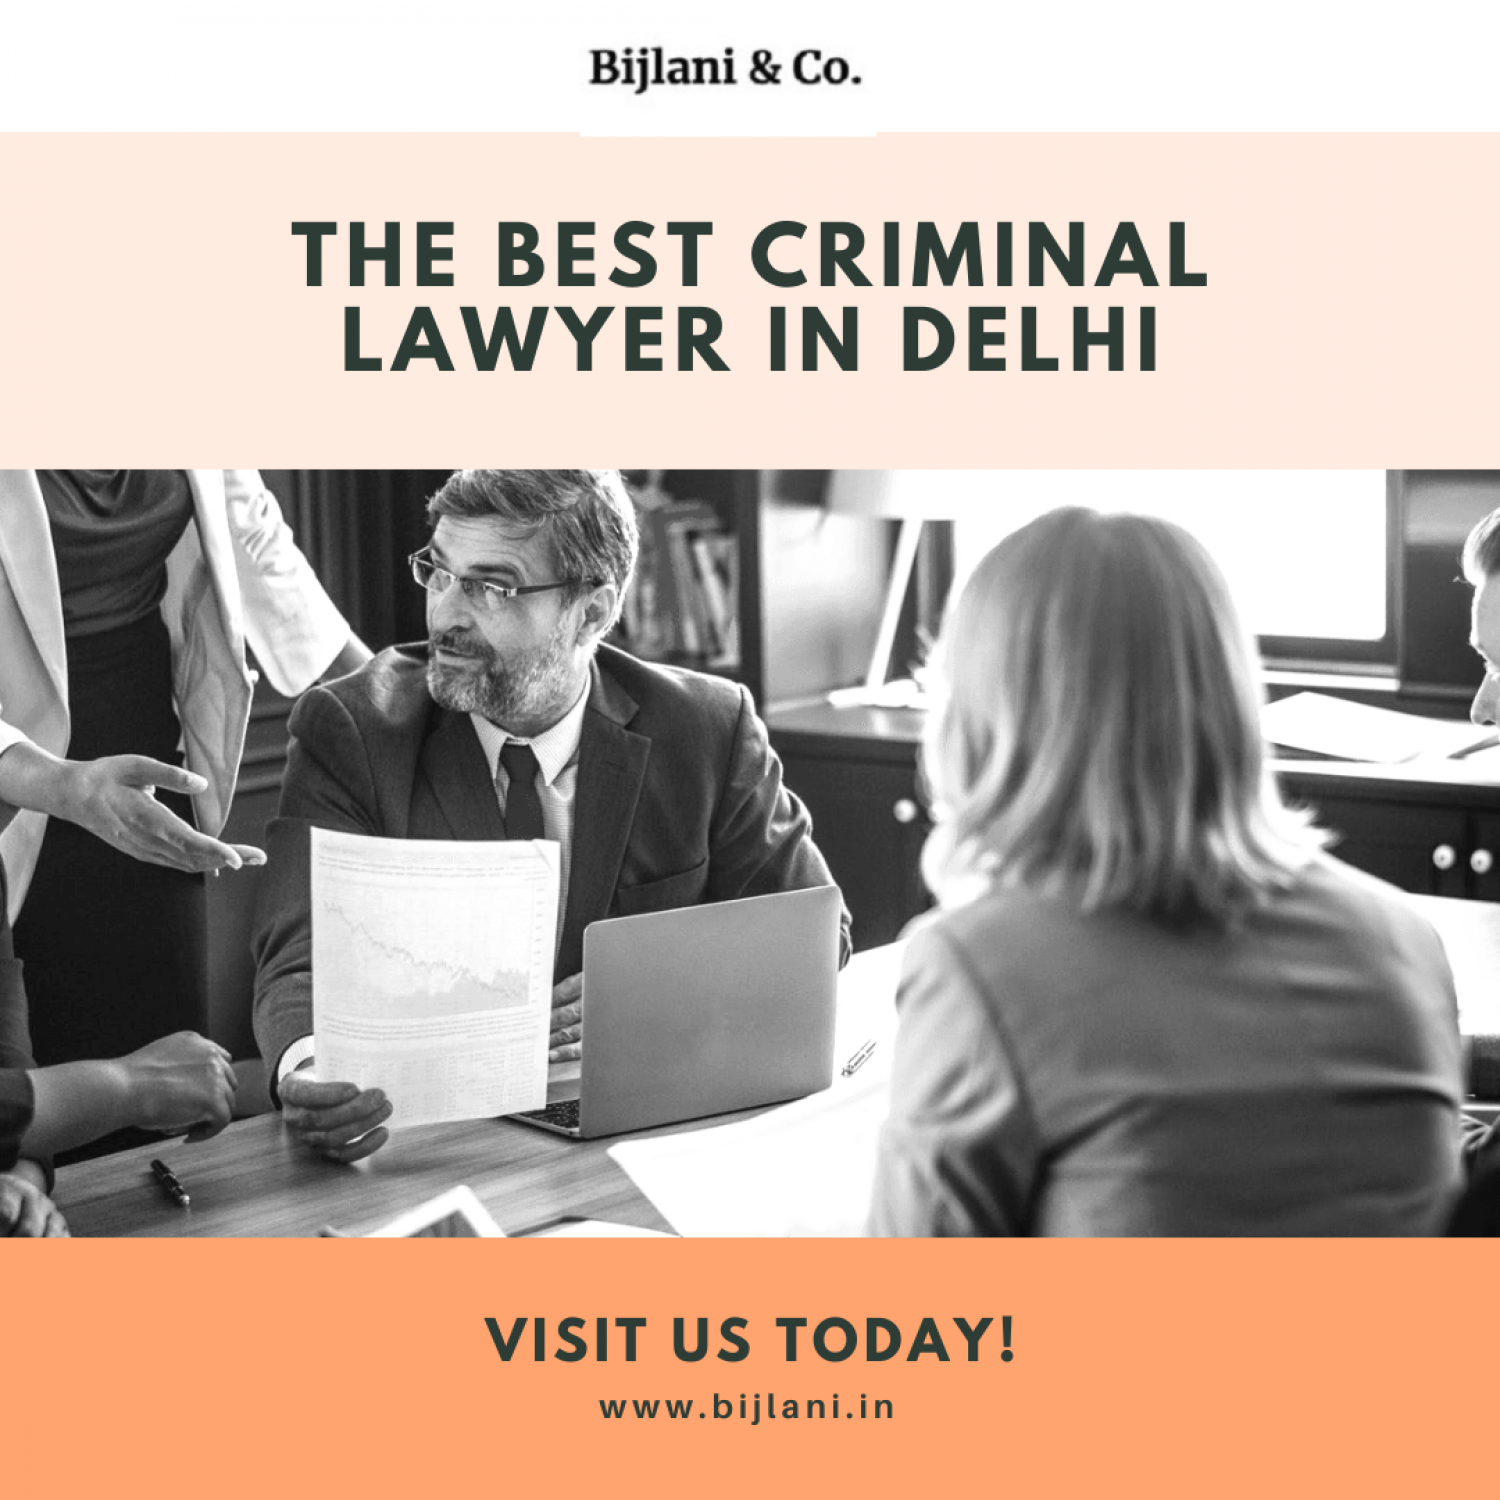 The Best Criminal Lawyer in Delhi Infographic